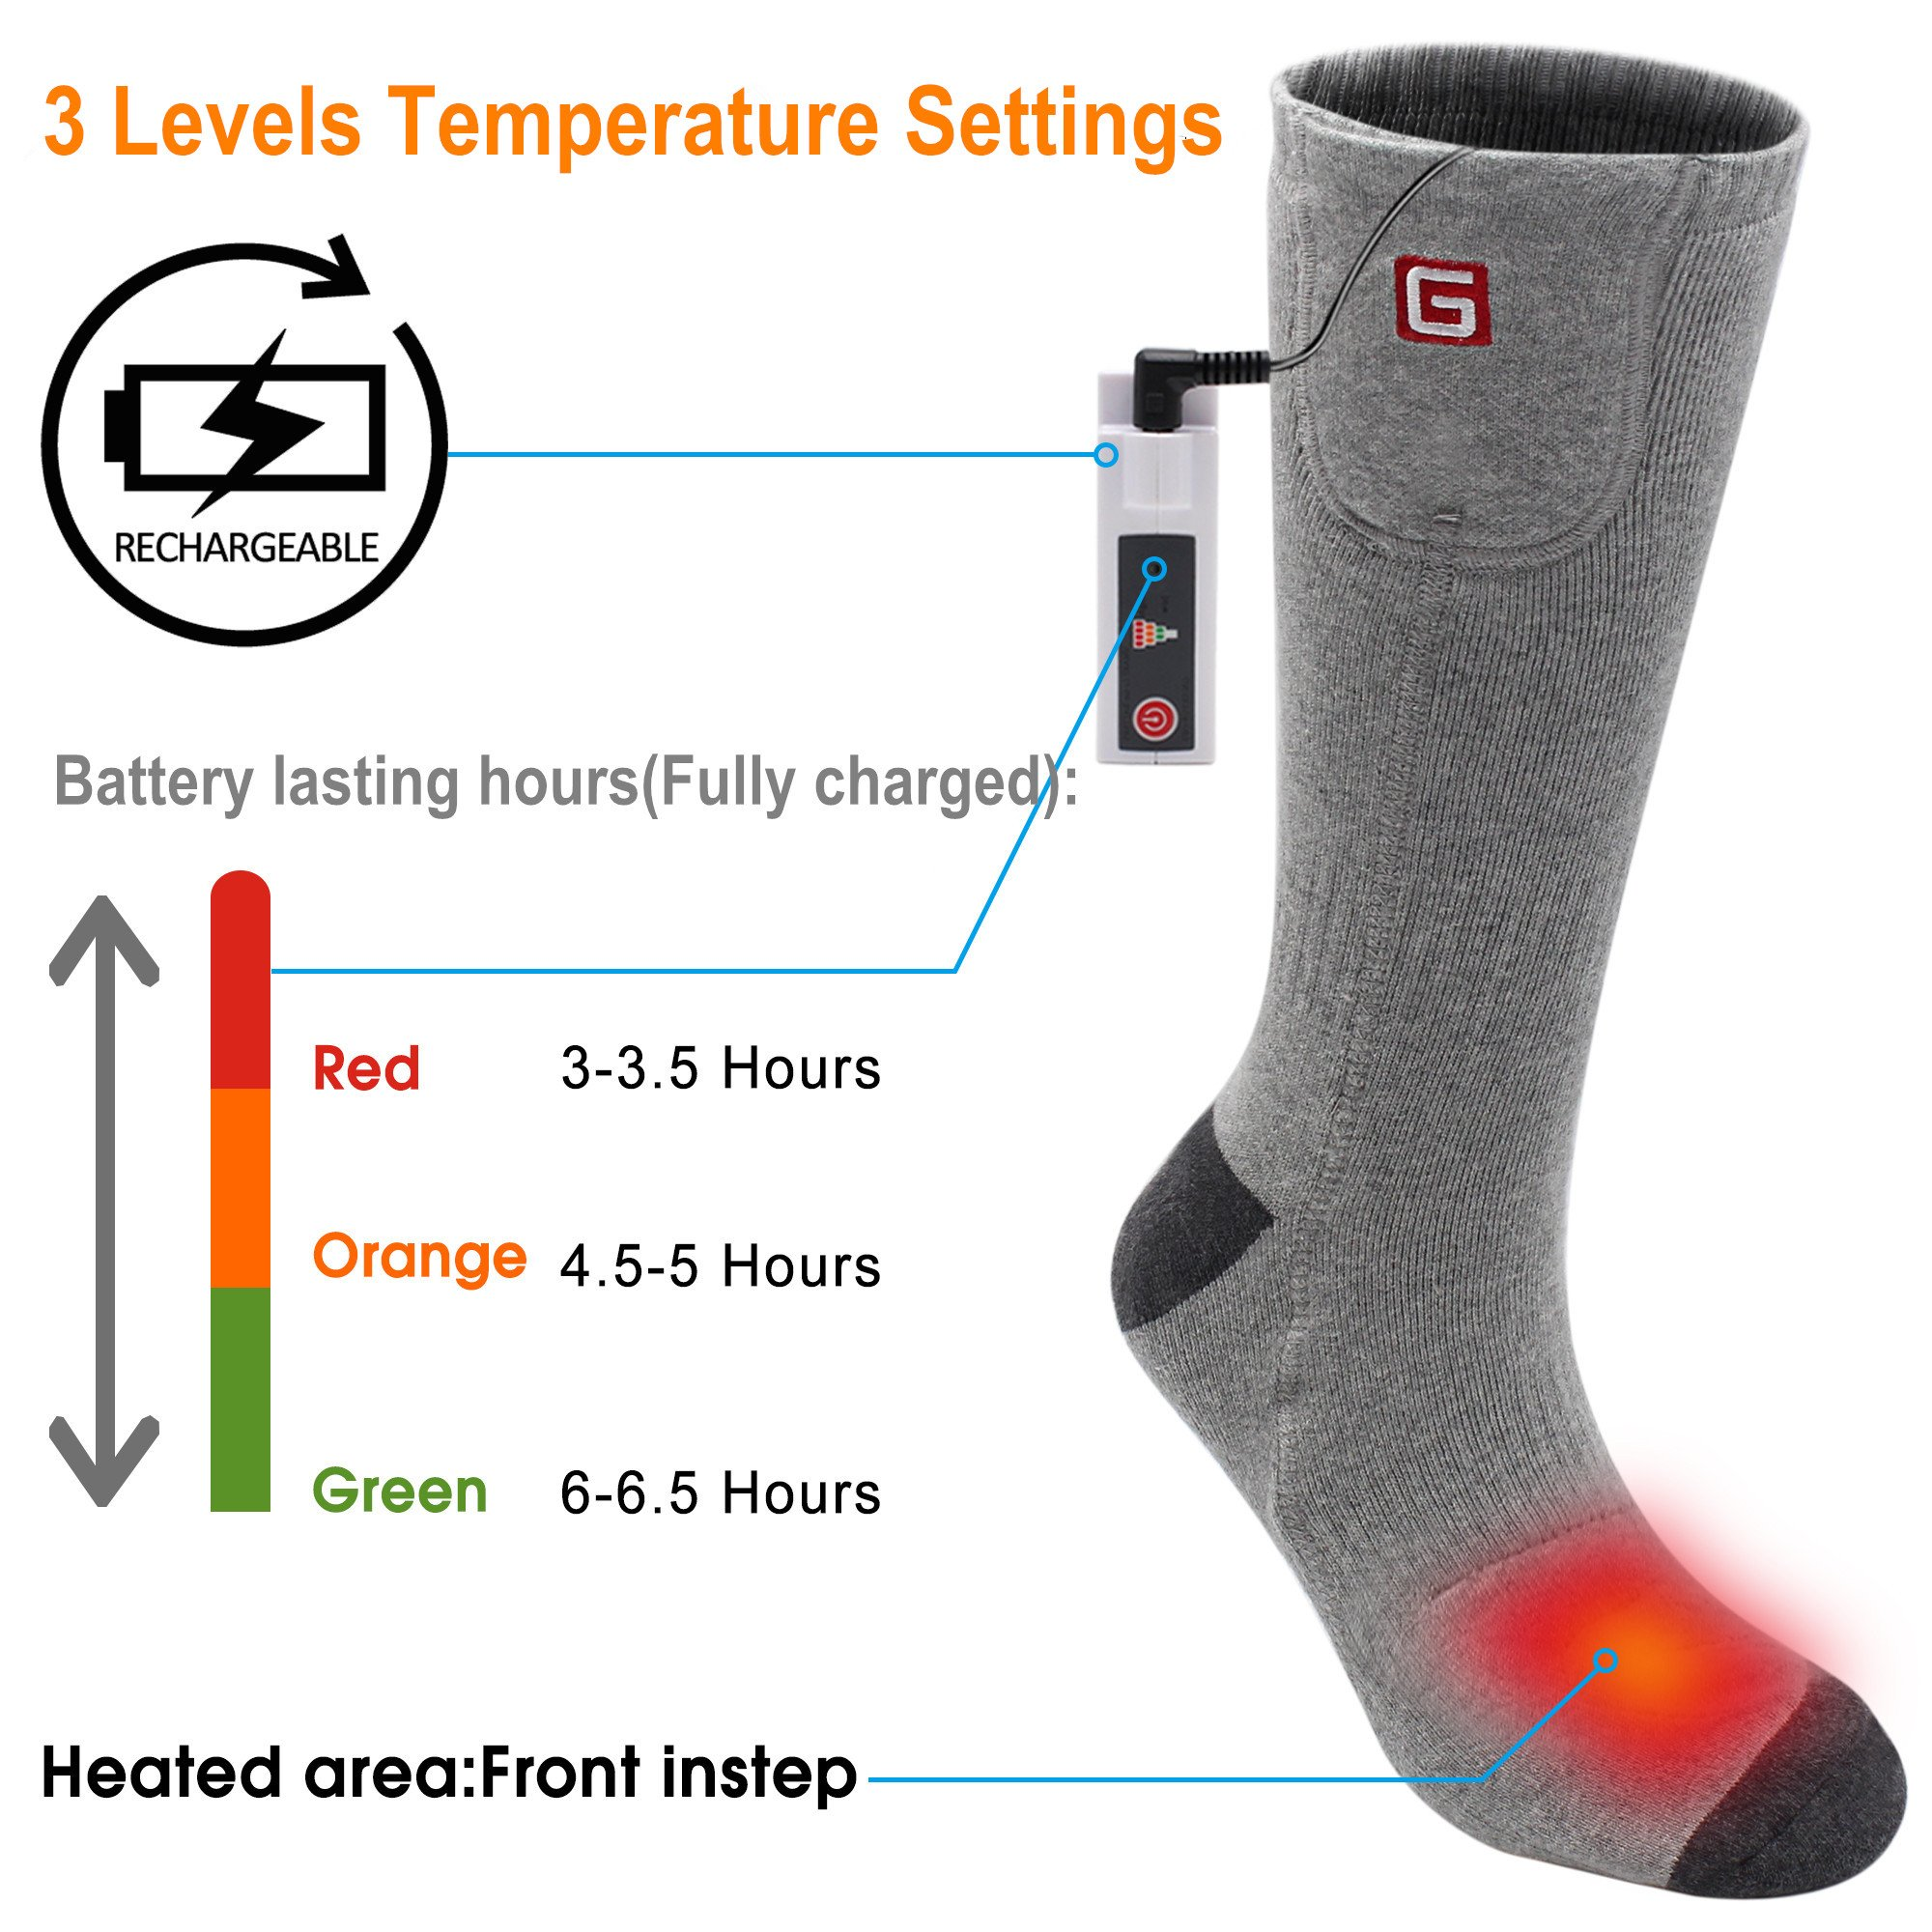 GLOBAL VASION Foot Warmers Electric Rechargeable Heated Socks for Hunting Skiing Fishing by GLOBAL VASION (Image #3)